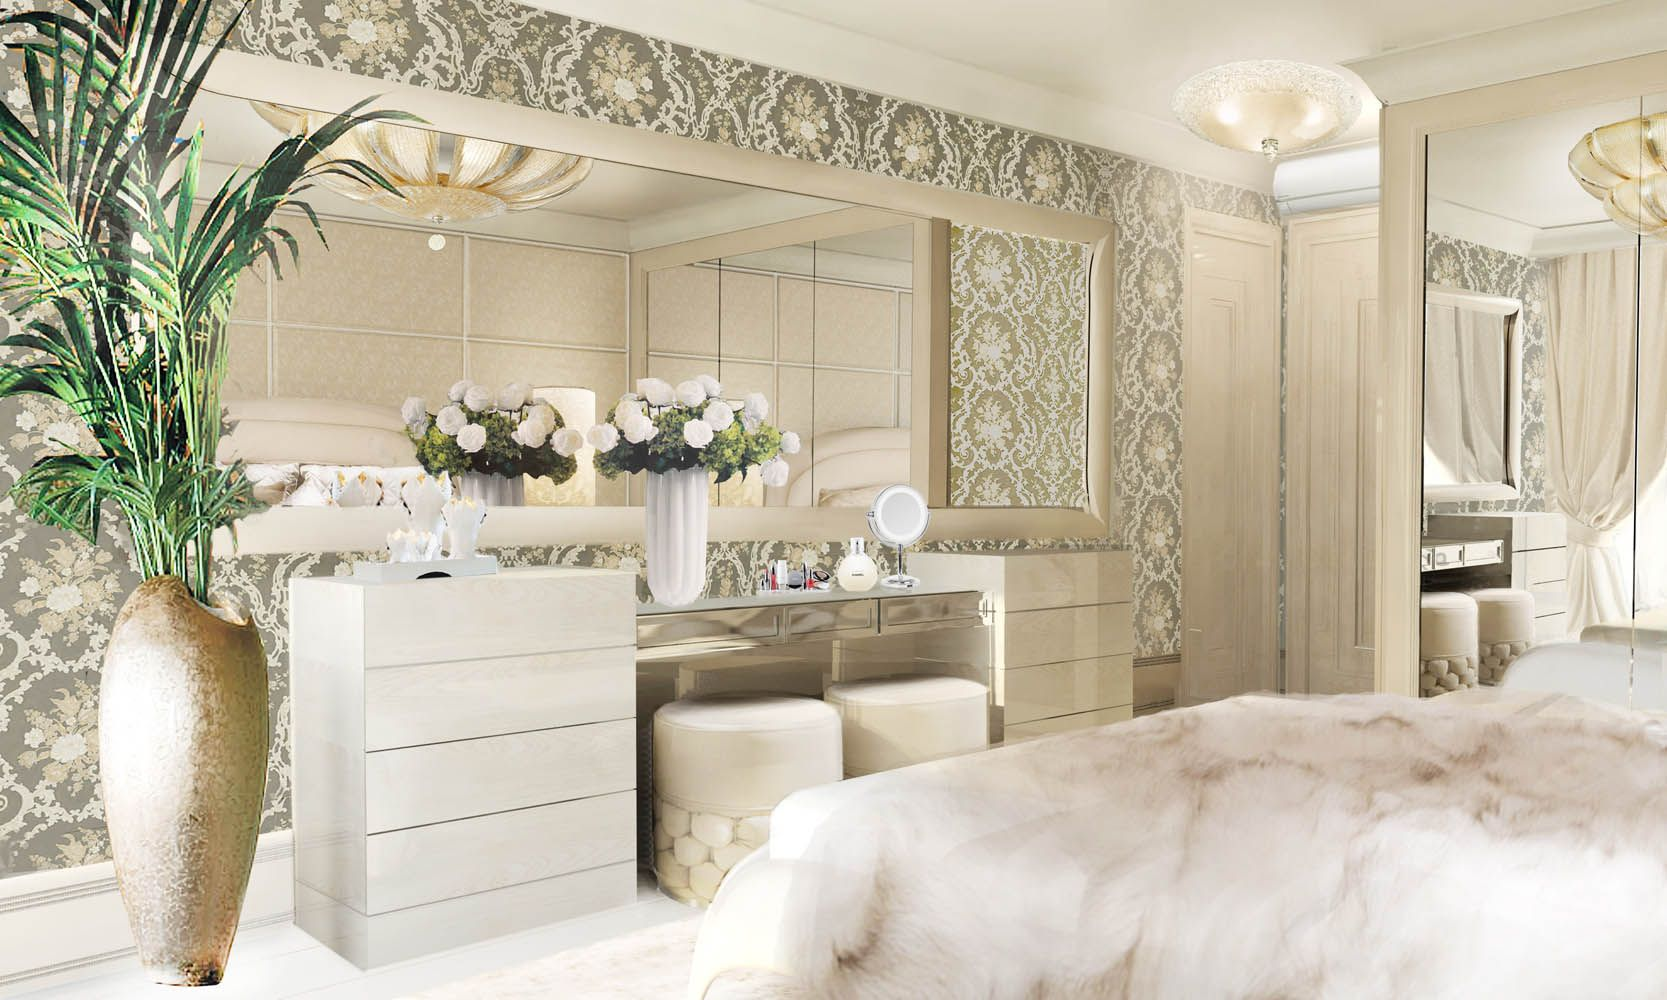 Modern Bedroom Mirrors Lidia Bersani Luxury Interior Modern Bedroom Commode With Big